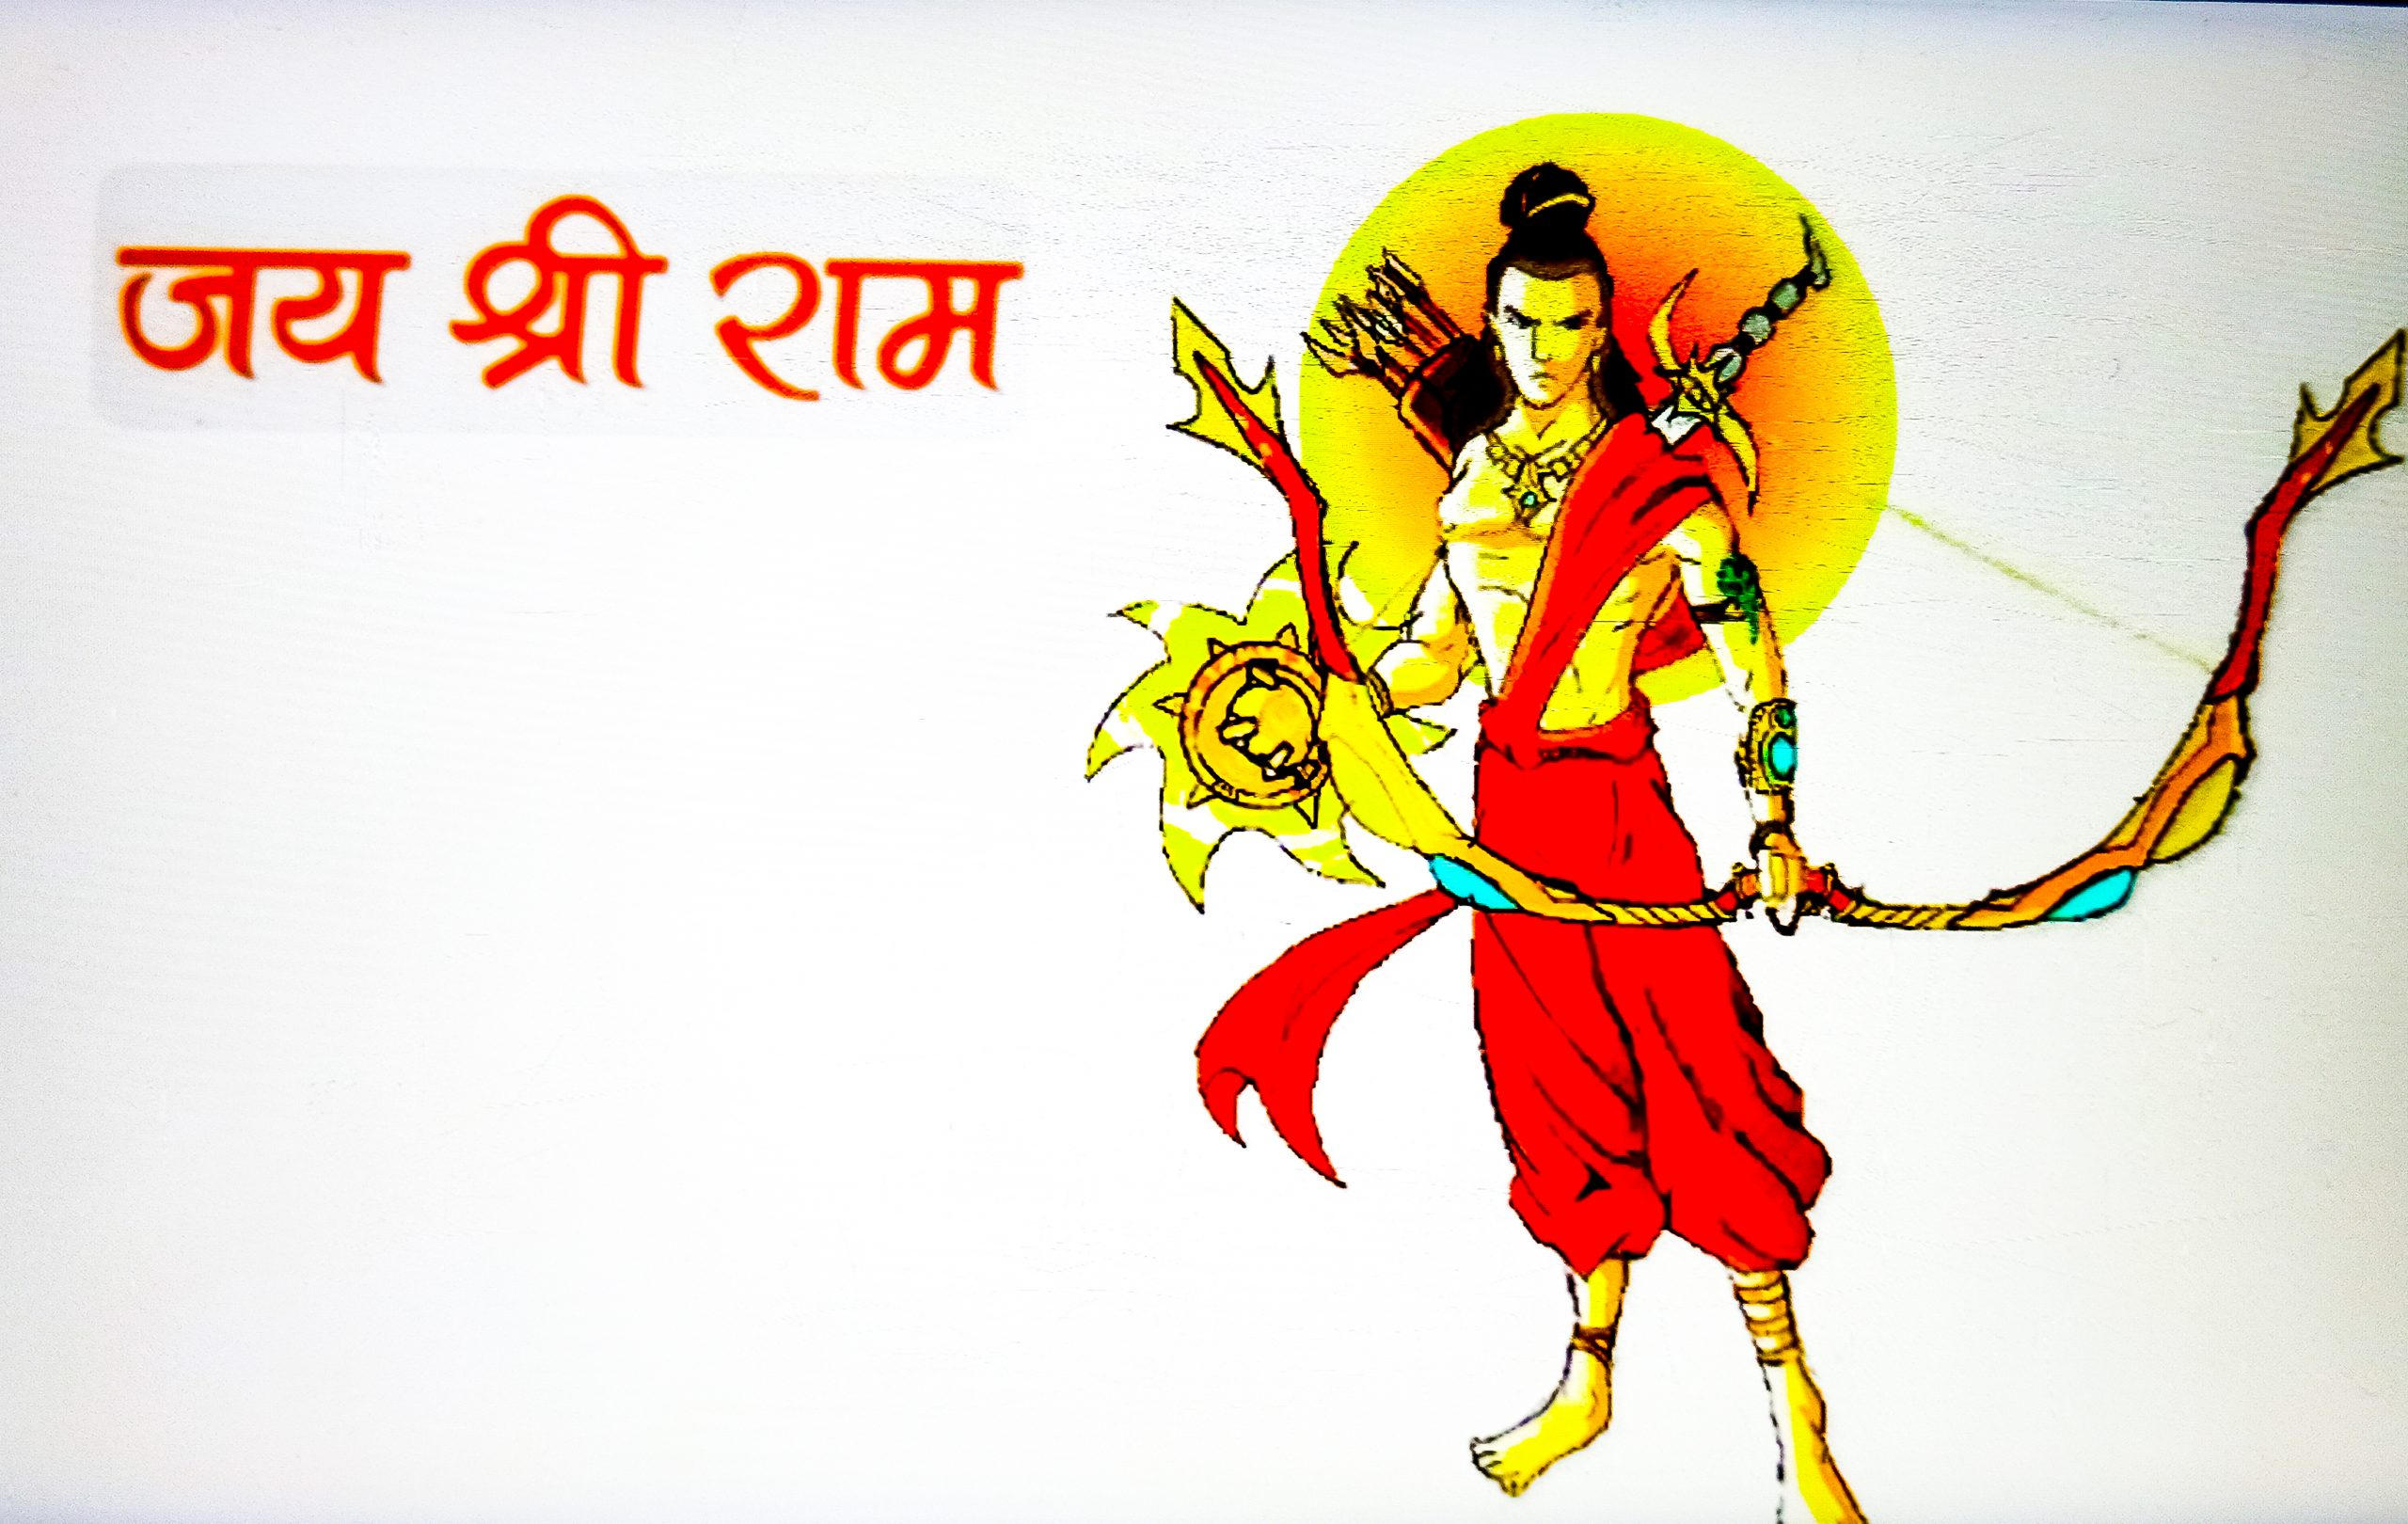 Jay Shree Ram Illustration